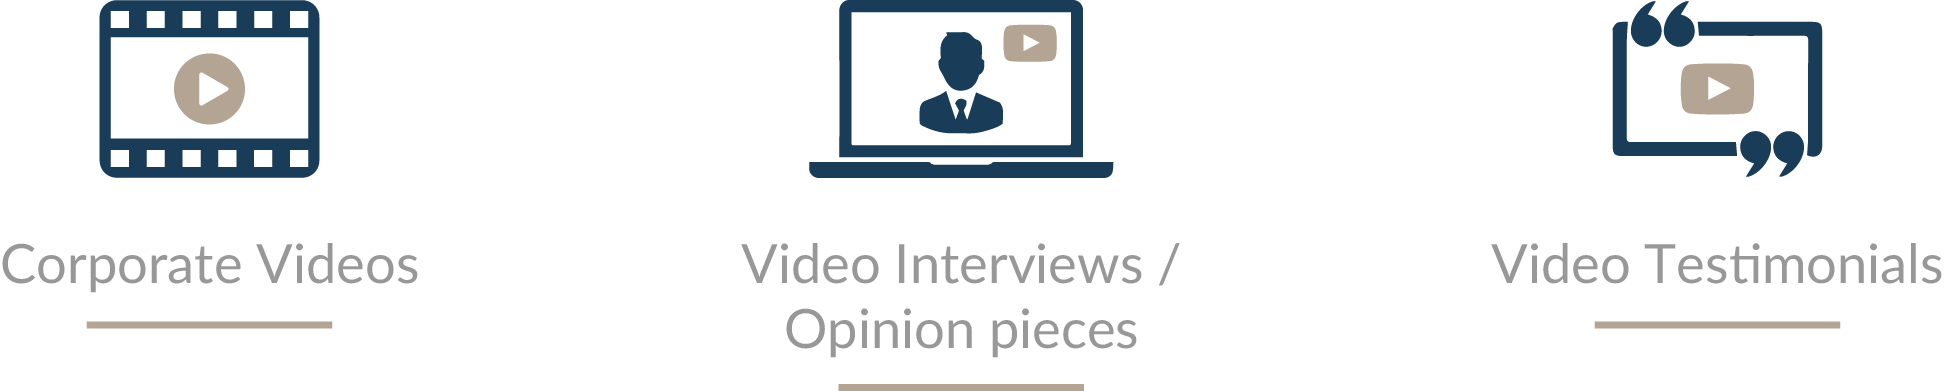 Corporate Videos, Video Interviews and Opinion Pieces, Video Testimonials